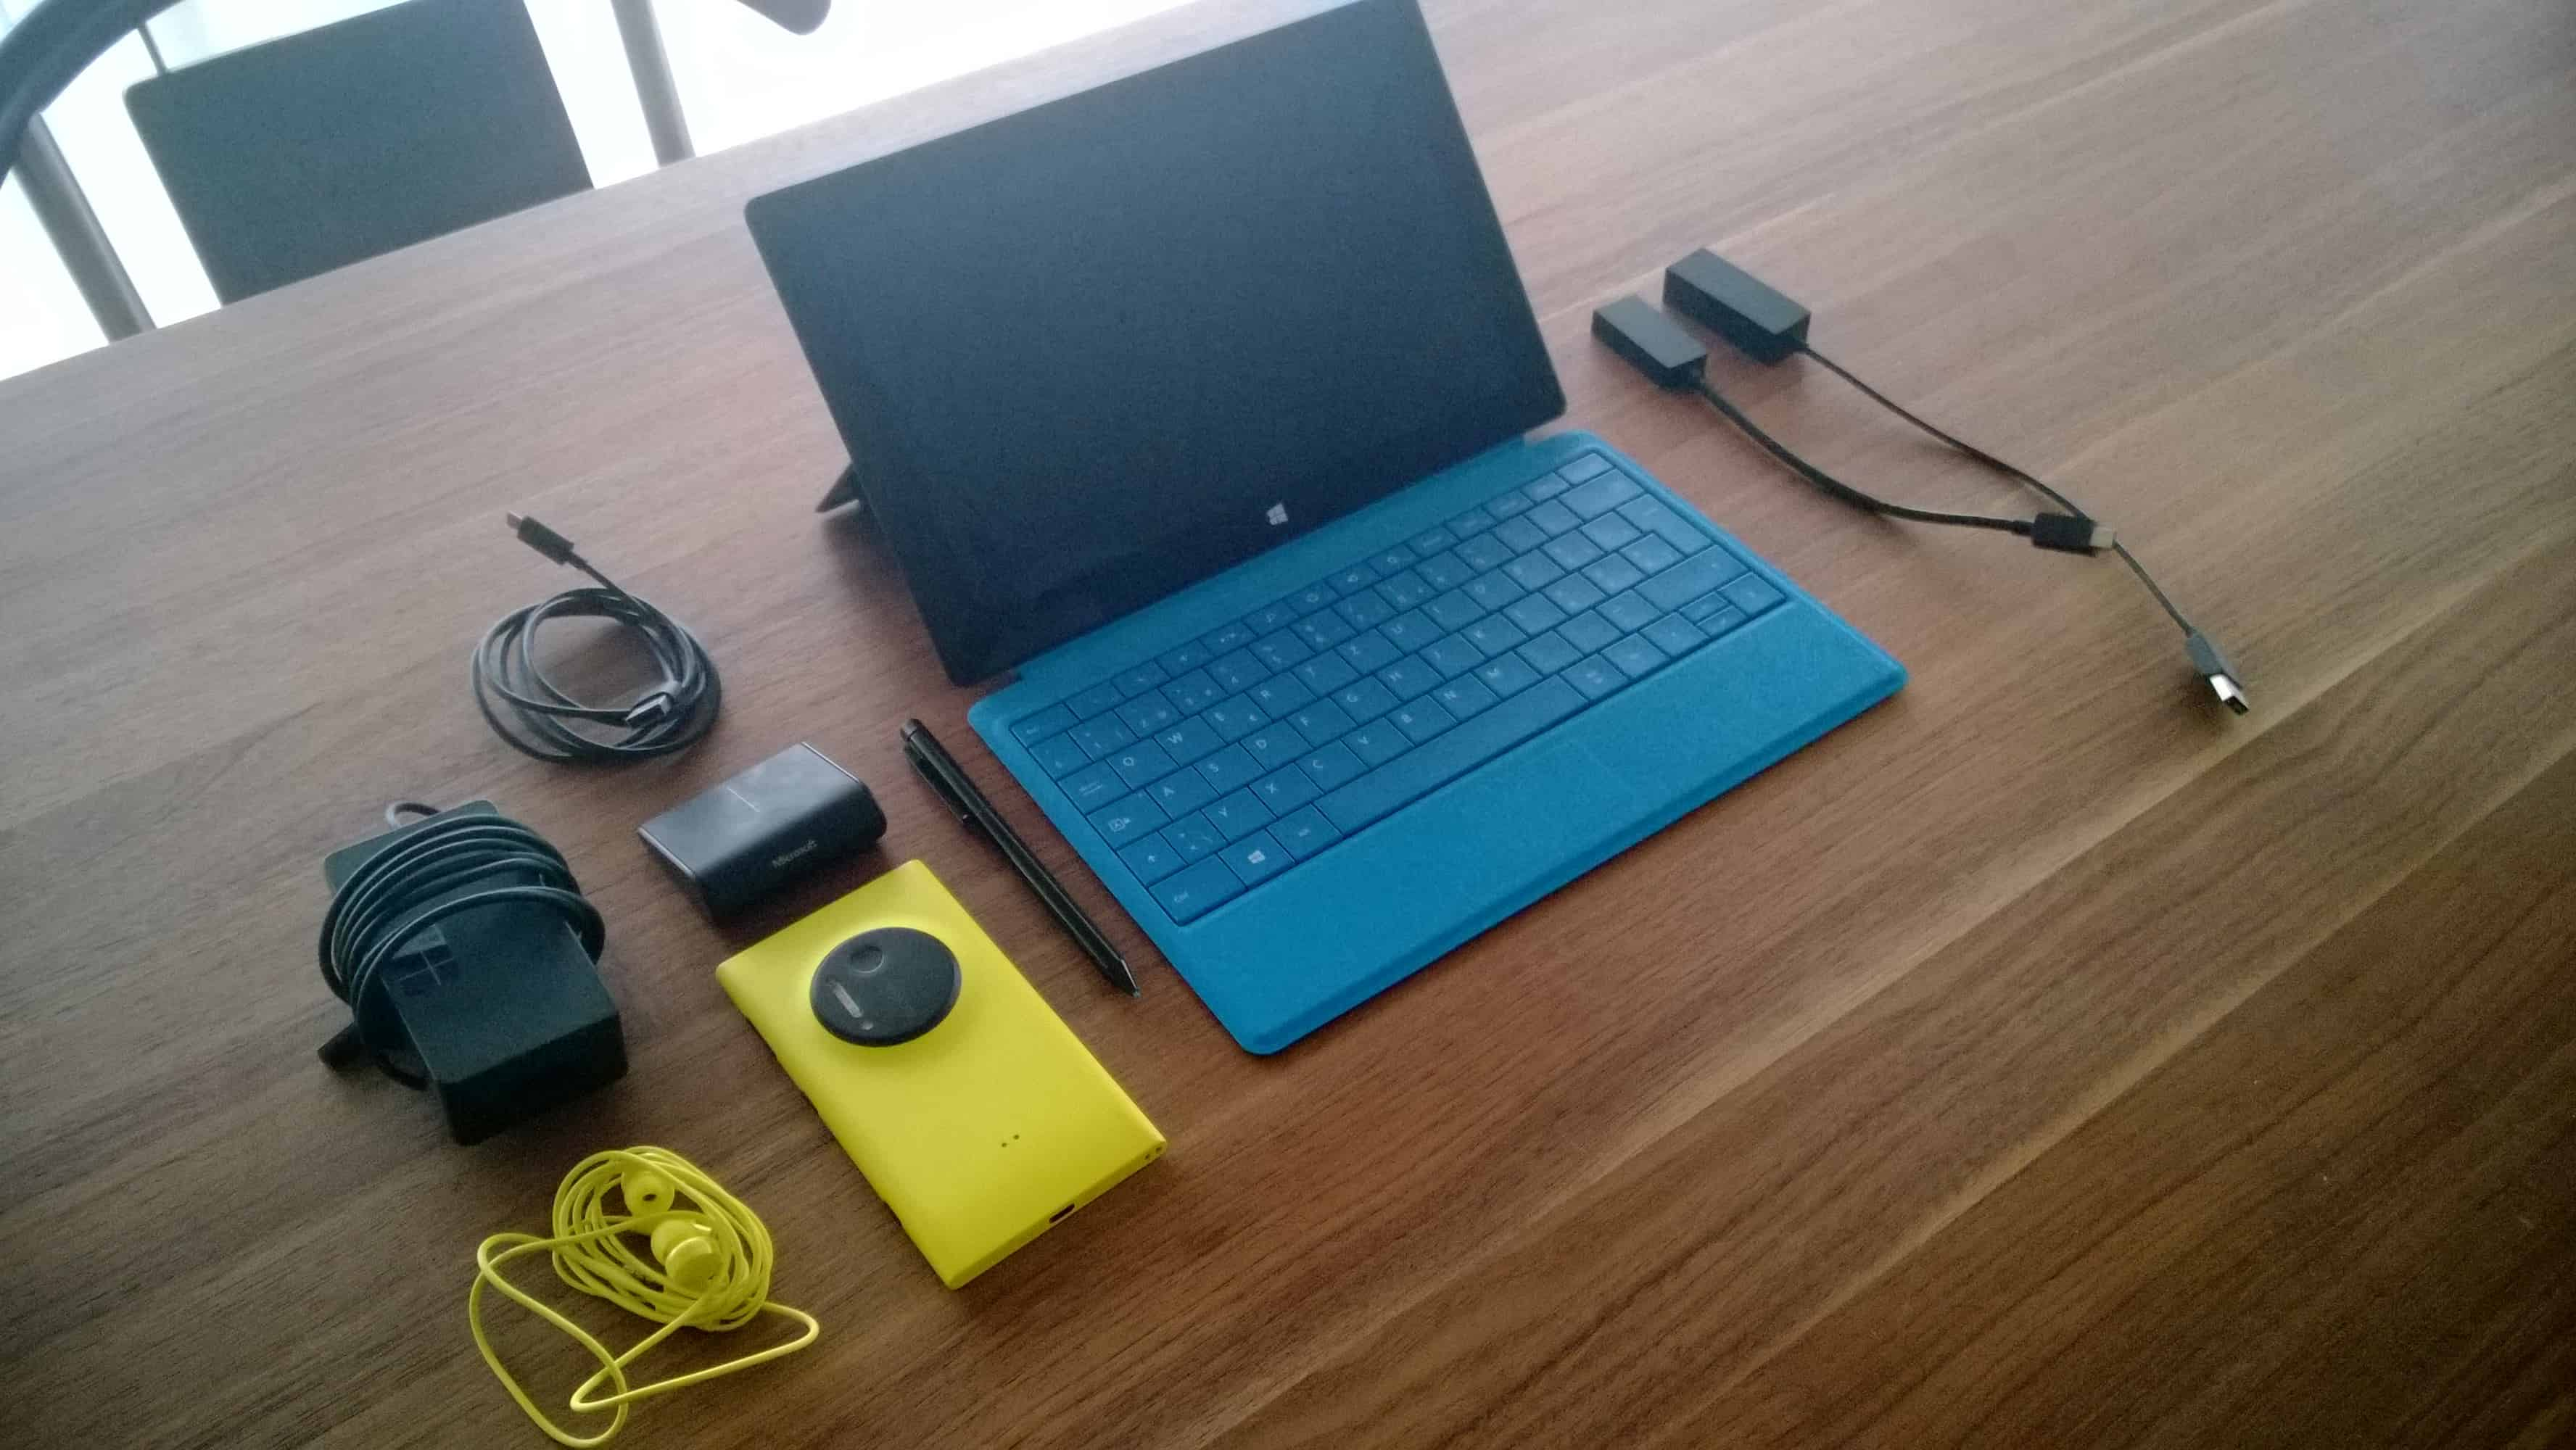 Surface Pro and Nokia Lumia 1020